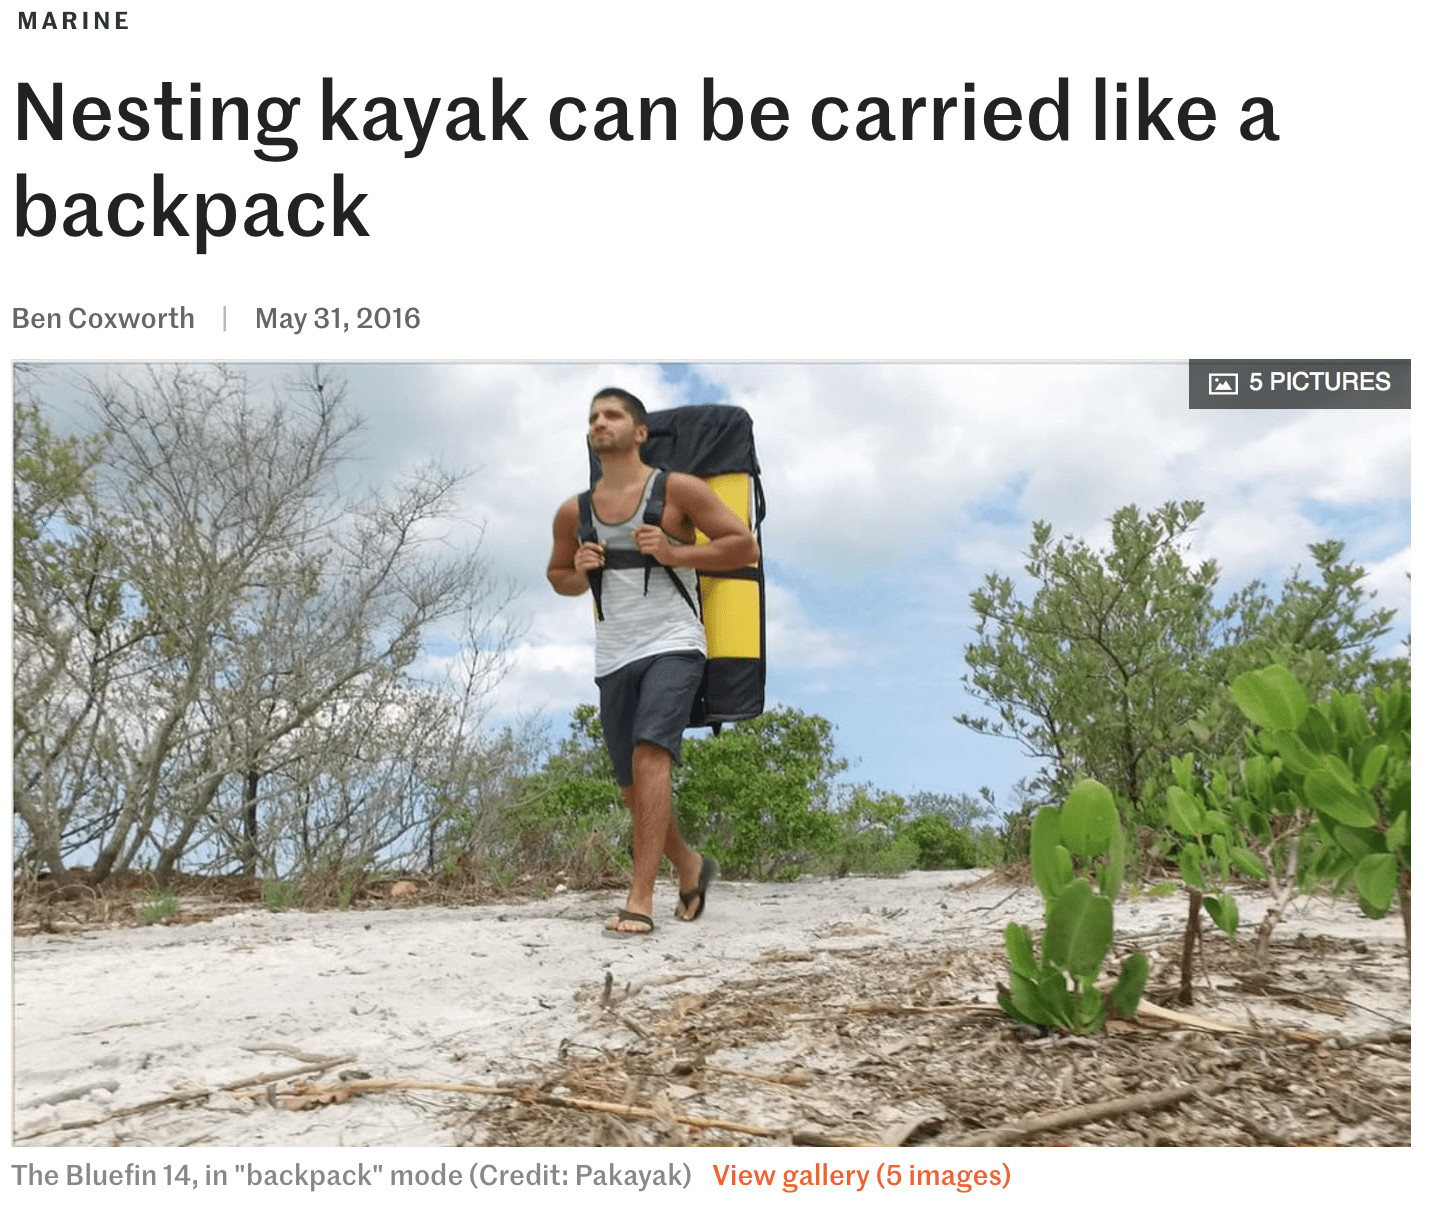 gizmag.com: Nesting kayak can be carried like a backpack